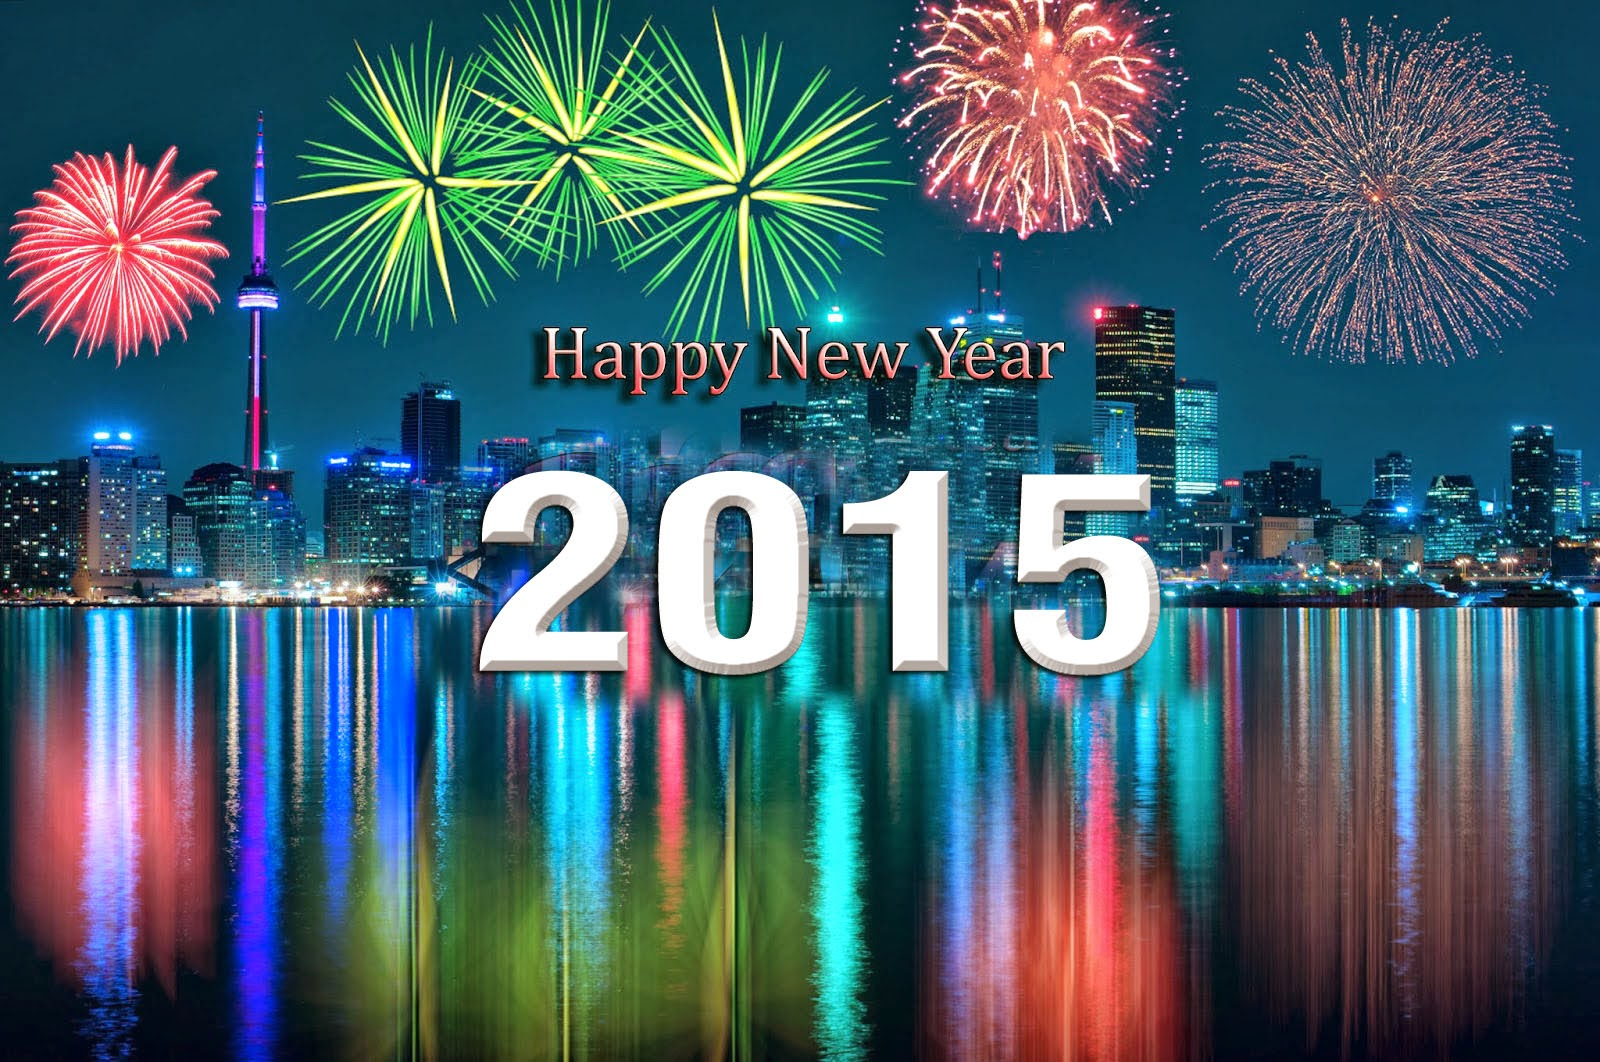 happy new year wallpaper 2015 in hd happy new year 2015 wallpaper